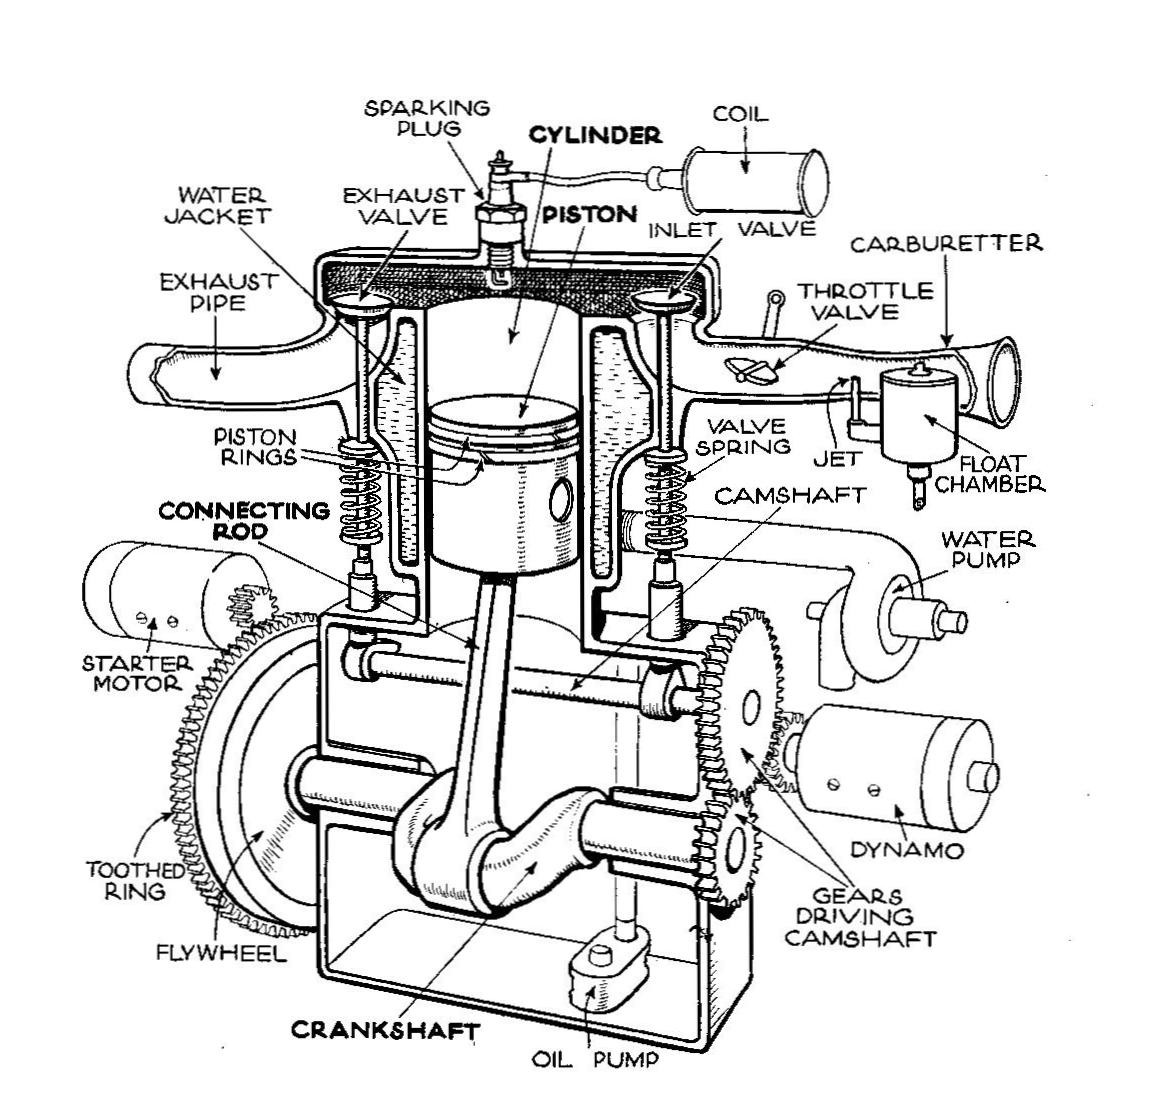 hight resolution of h23a1 engine diagram of a